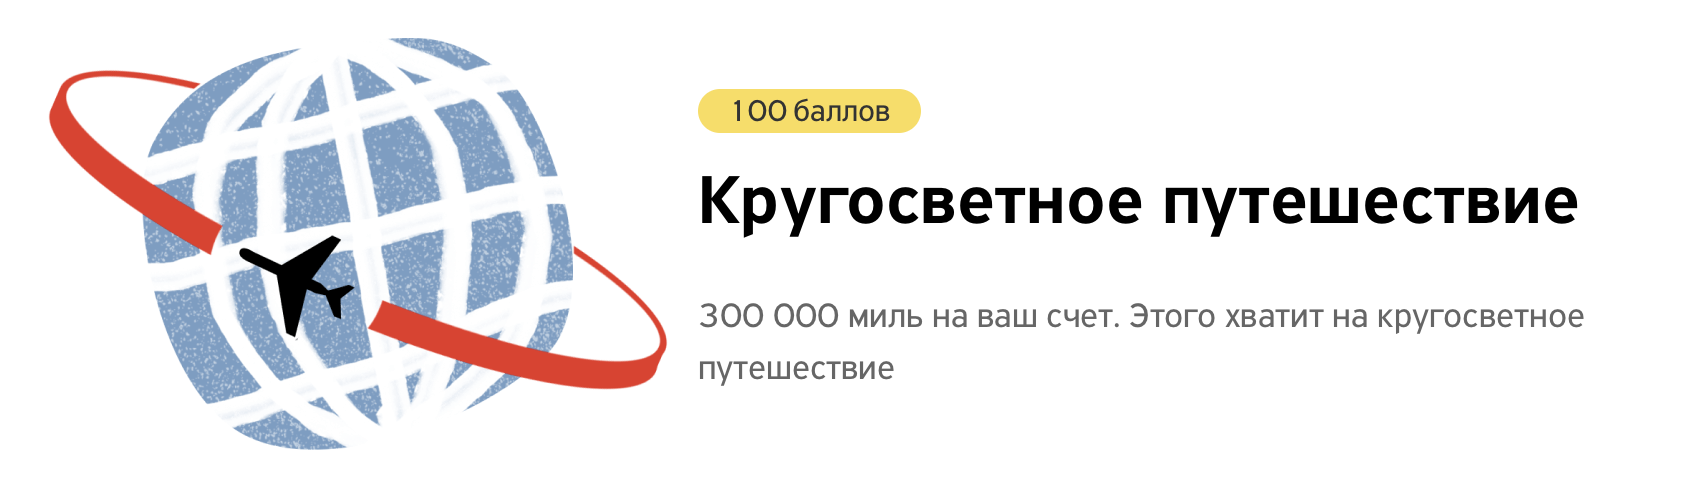 tinkoff all airlines all world - Выгодна ли кредитная карта All Airlines от Тинькофф банка?